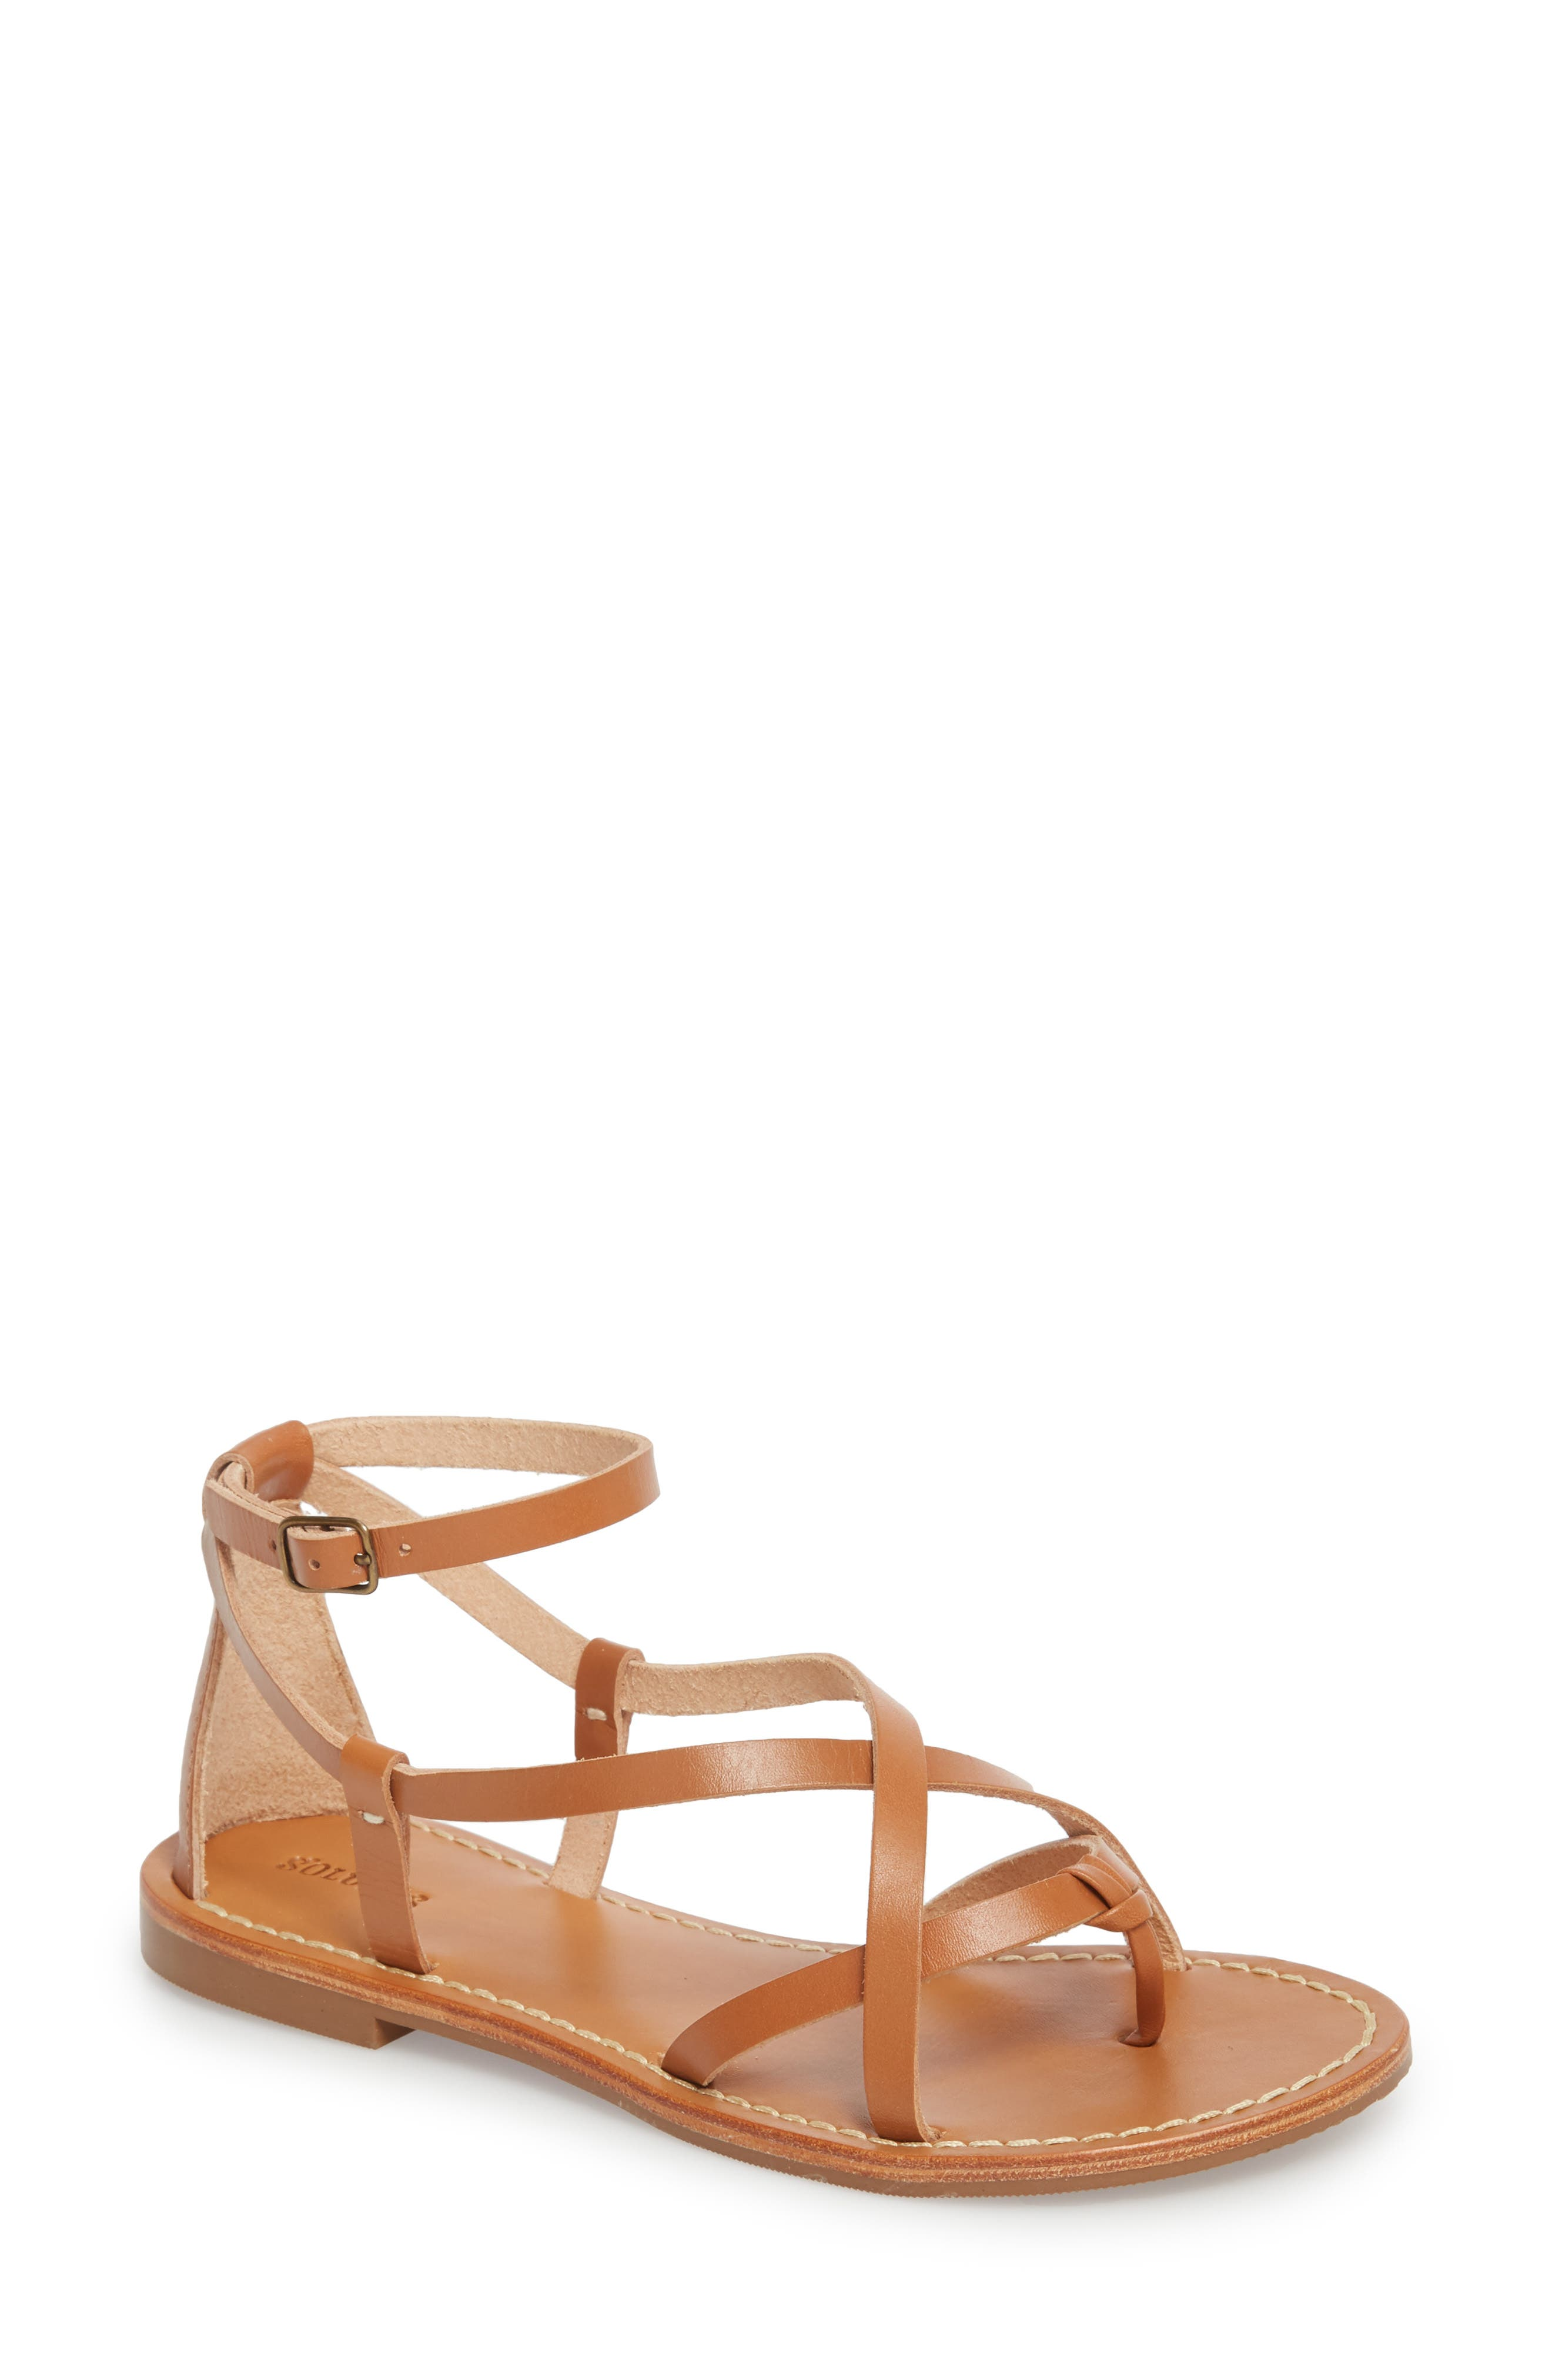 Strappy Sandal,                             Main thumbnail 1, color,